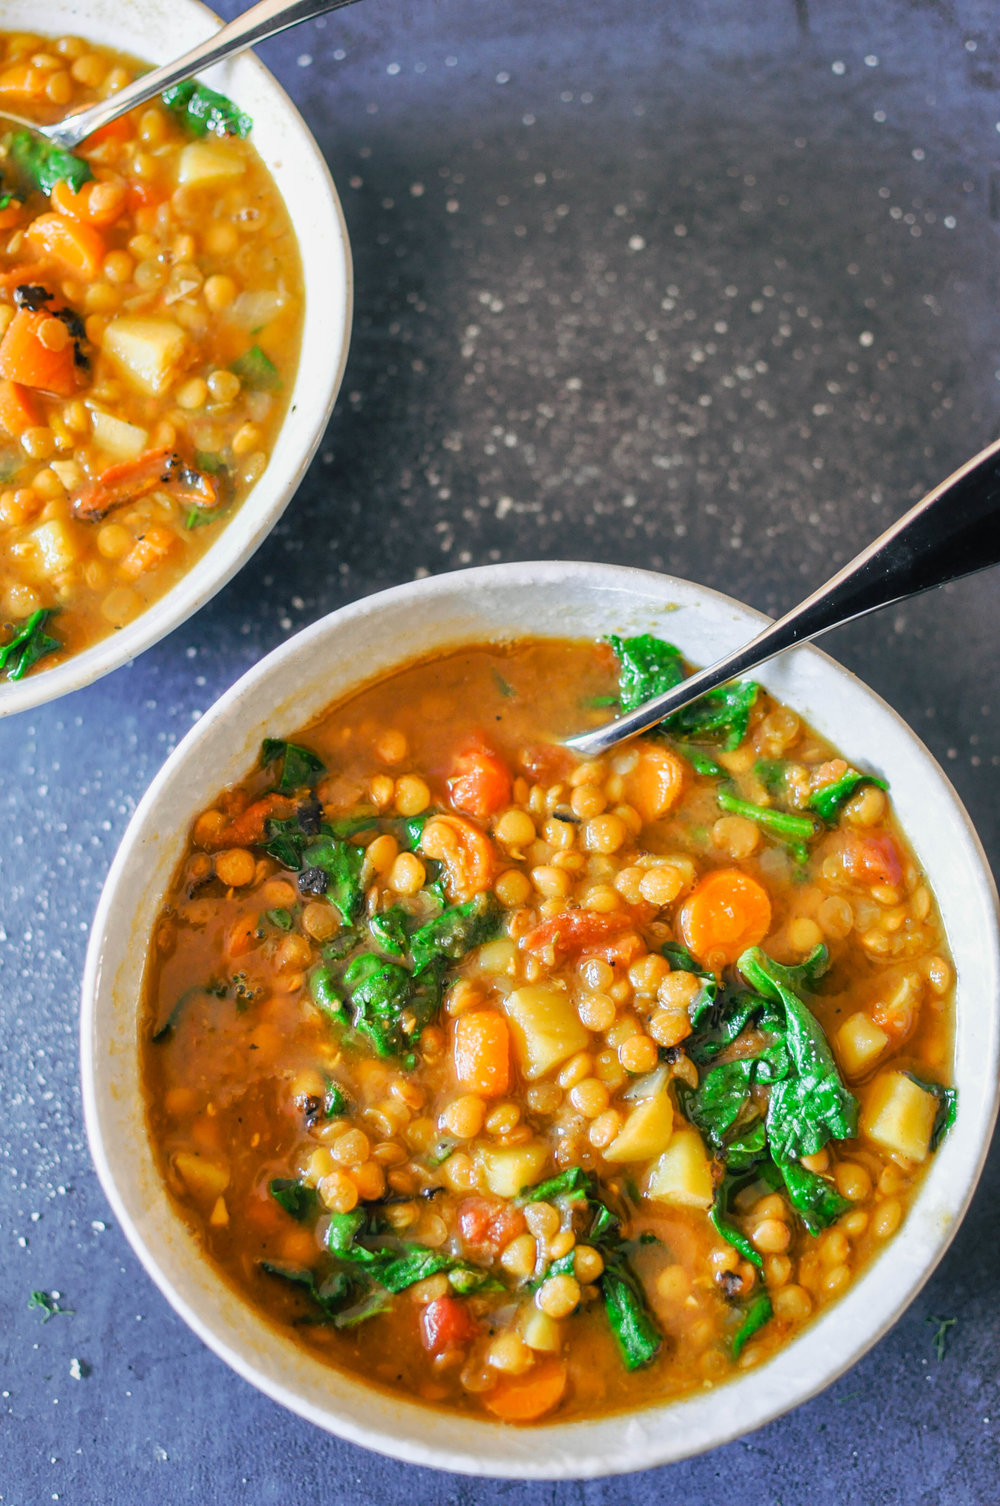 Vegan Lentil Soup with Ras el Hanout from This Healthy Table